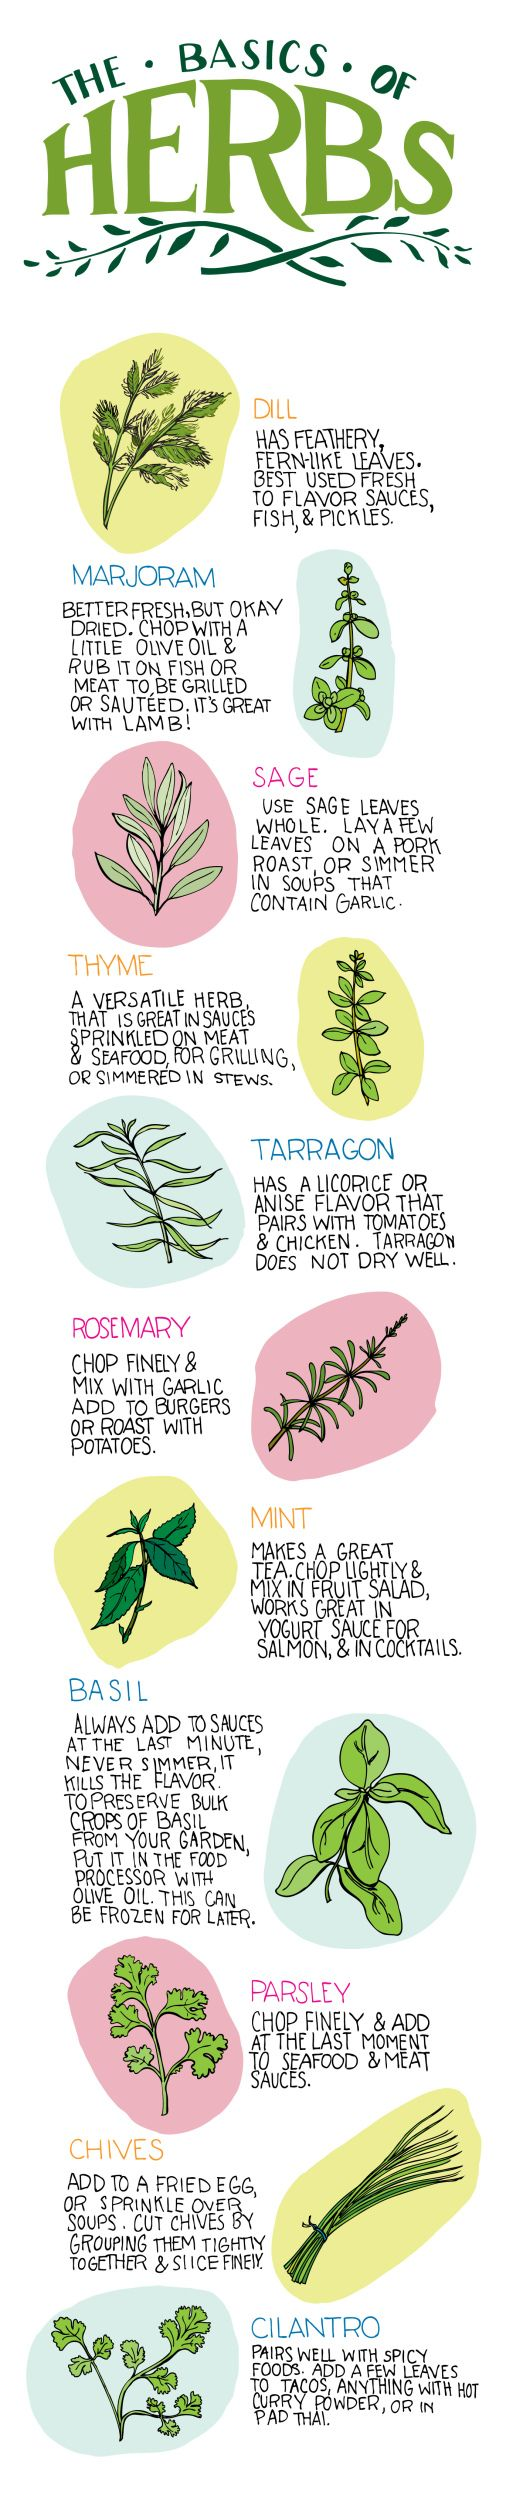 The Basics of Herbs by illustratedbites #Infographic #Herbs